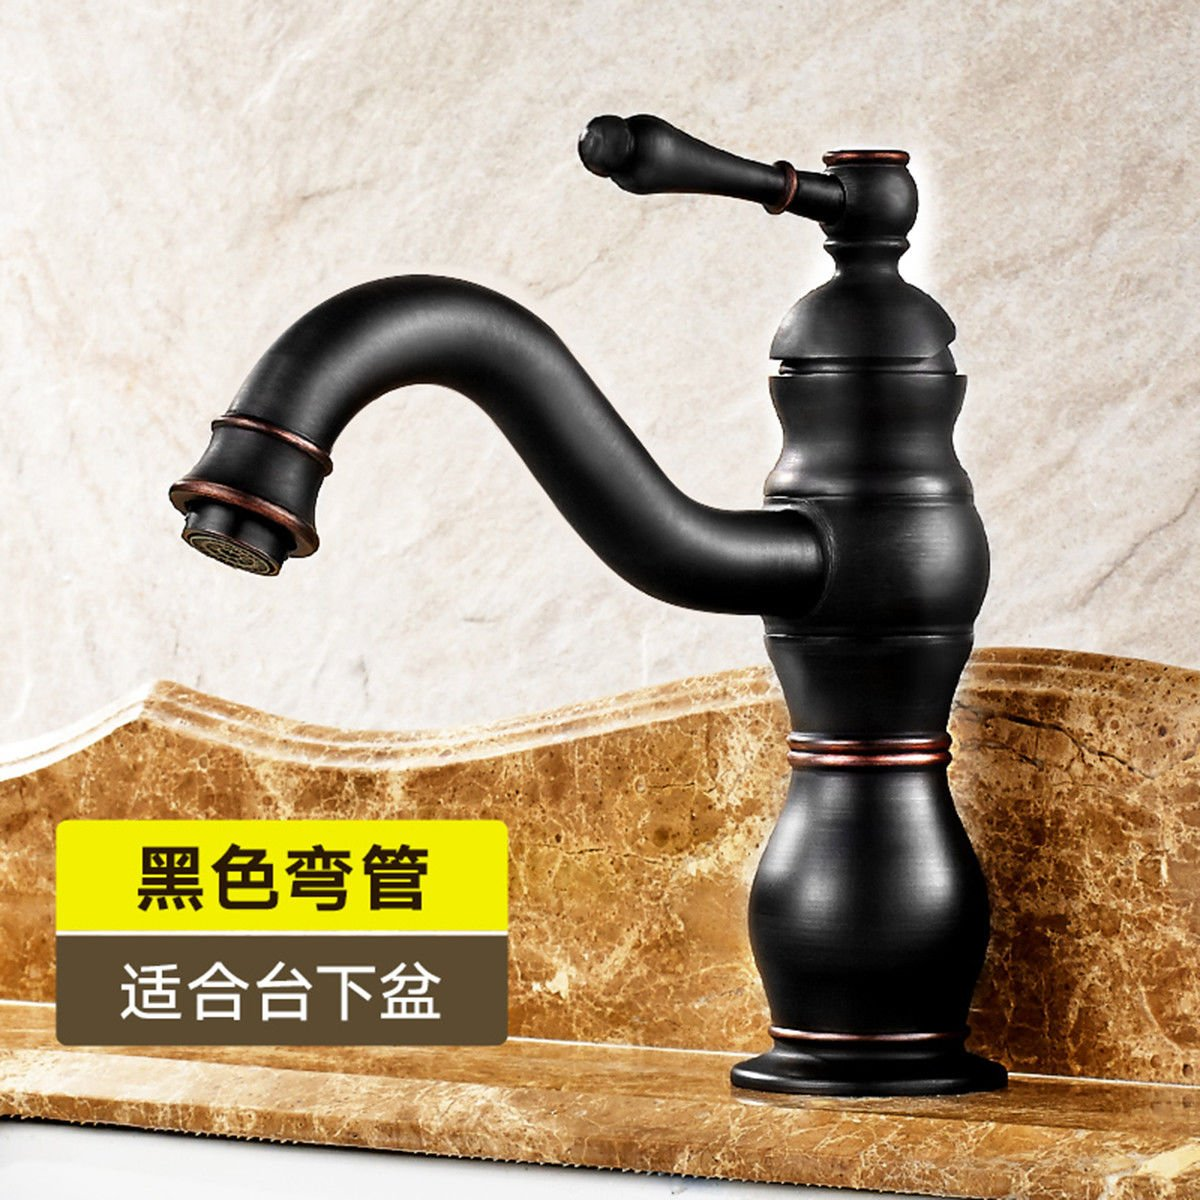 E Hlluya Professional Sink Mixer Tap Kitchen Tap on the black vanity area with sink water faucet hand wash basin faucet antique high, hot and cold water faucets copper single hole bathroom faucet,F